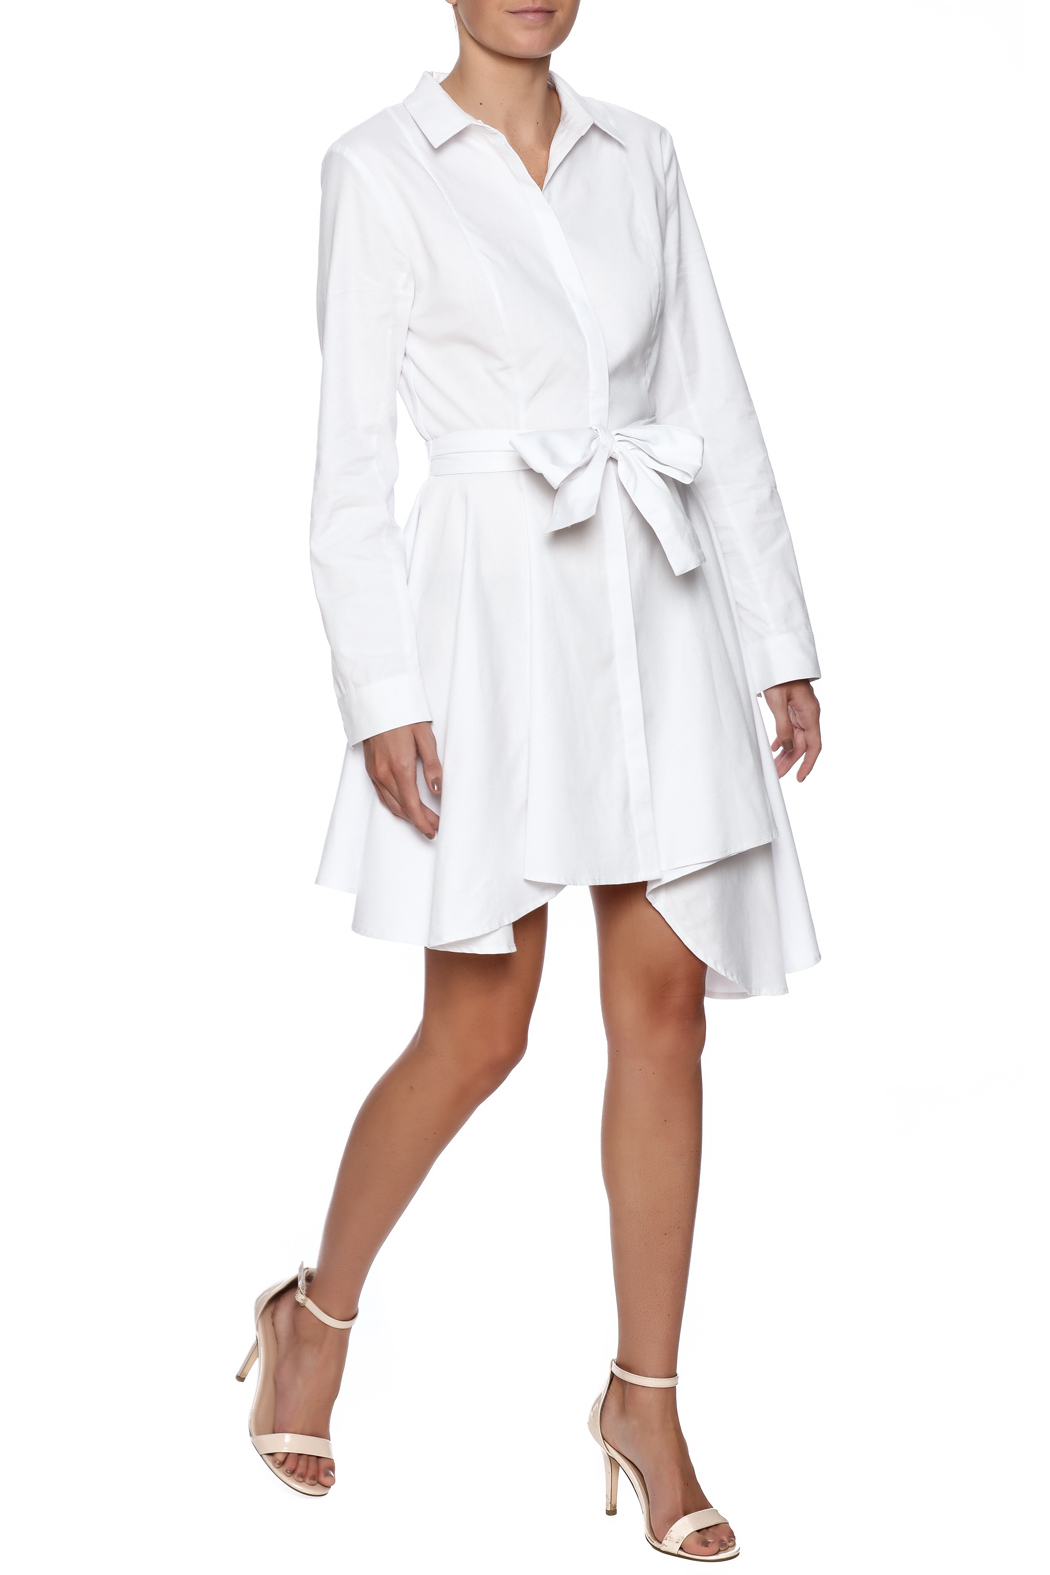 C/MEO COLLECTIVE White Shirt Dress - Front Full Image